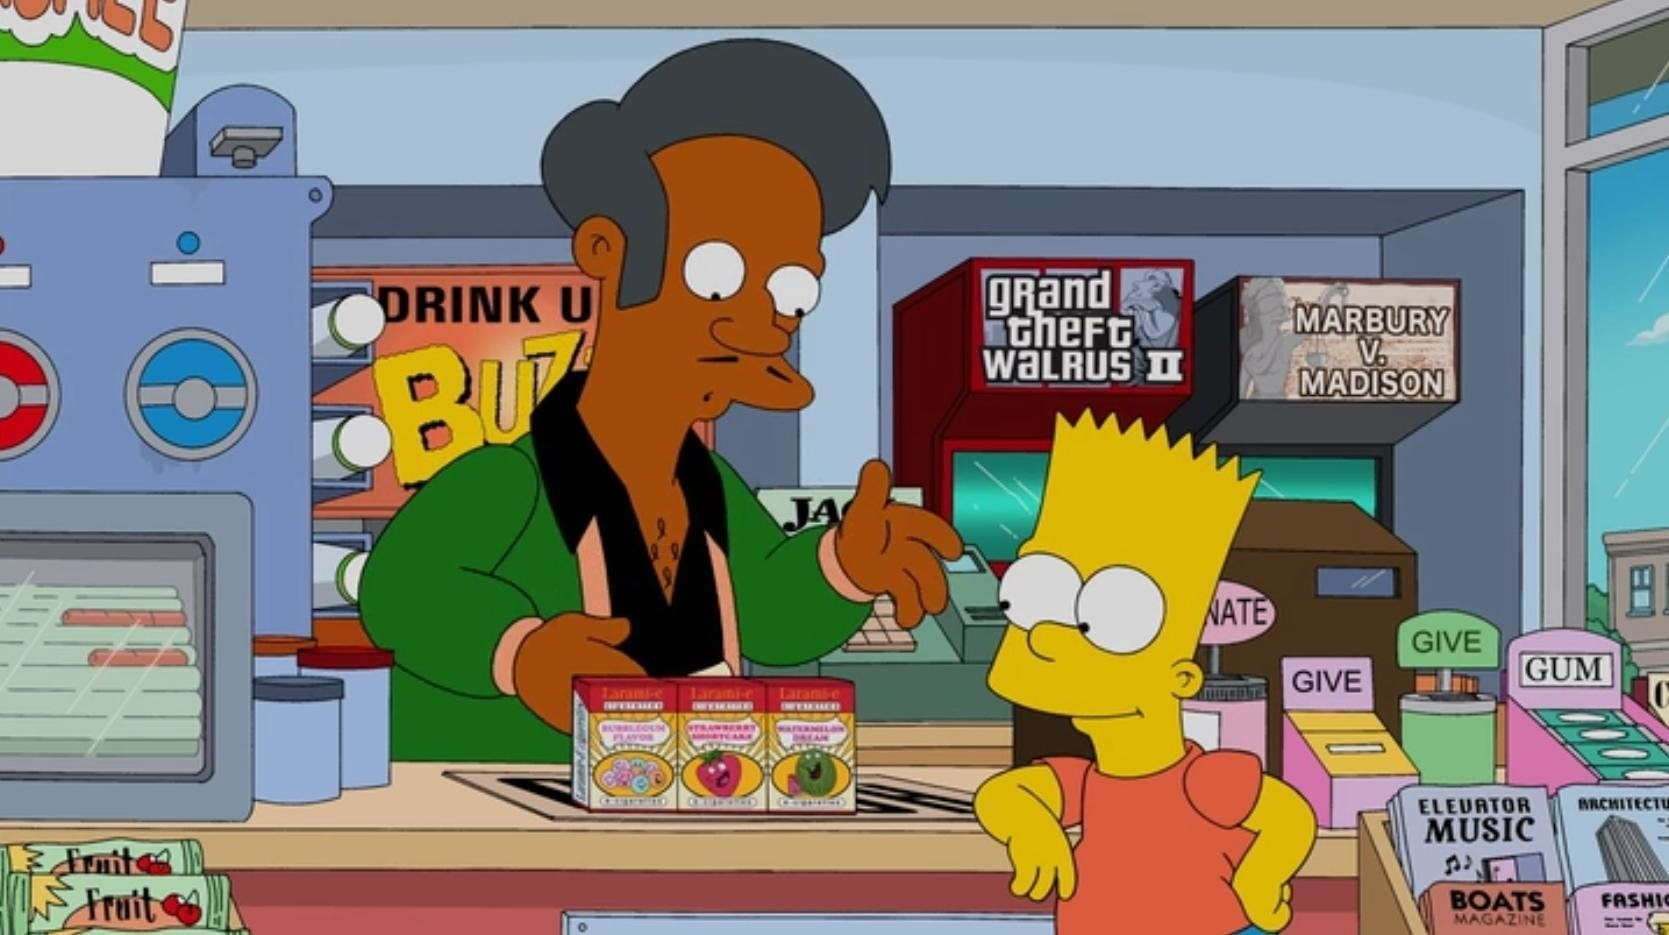 'The Simpsons' Voice Actor Finally Responds To 'The Problem With Apu' Documentary